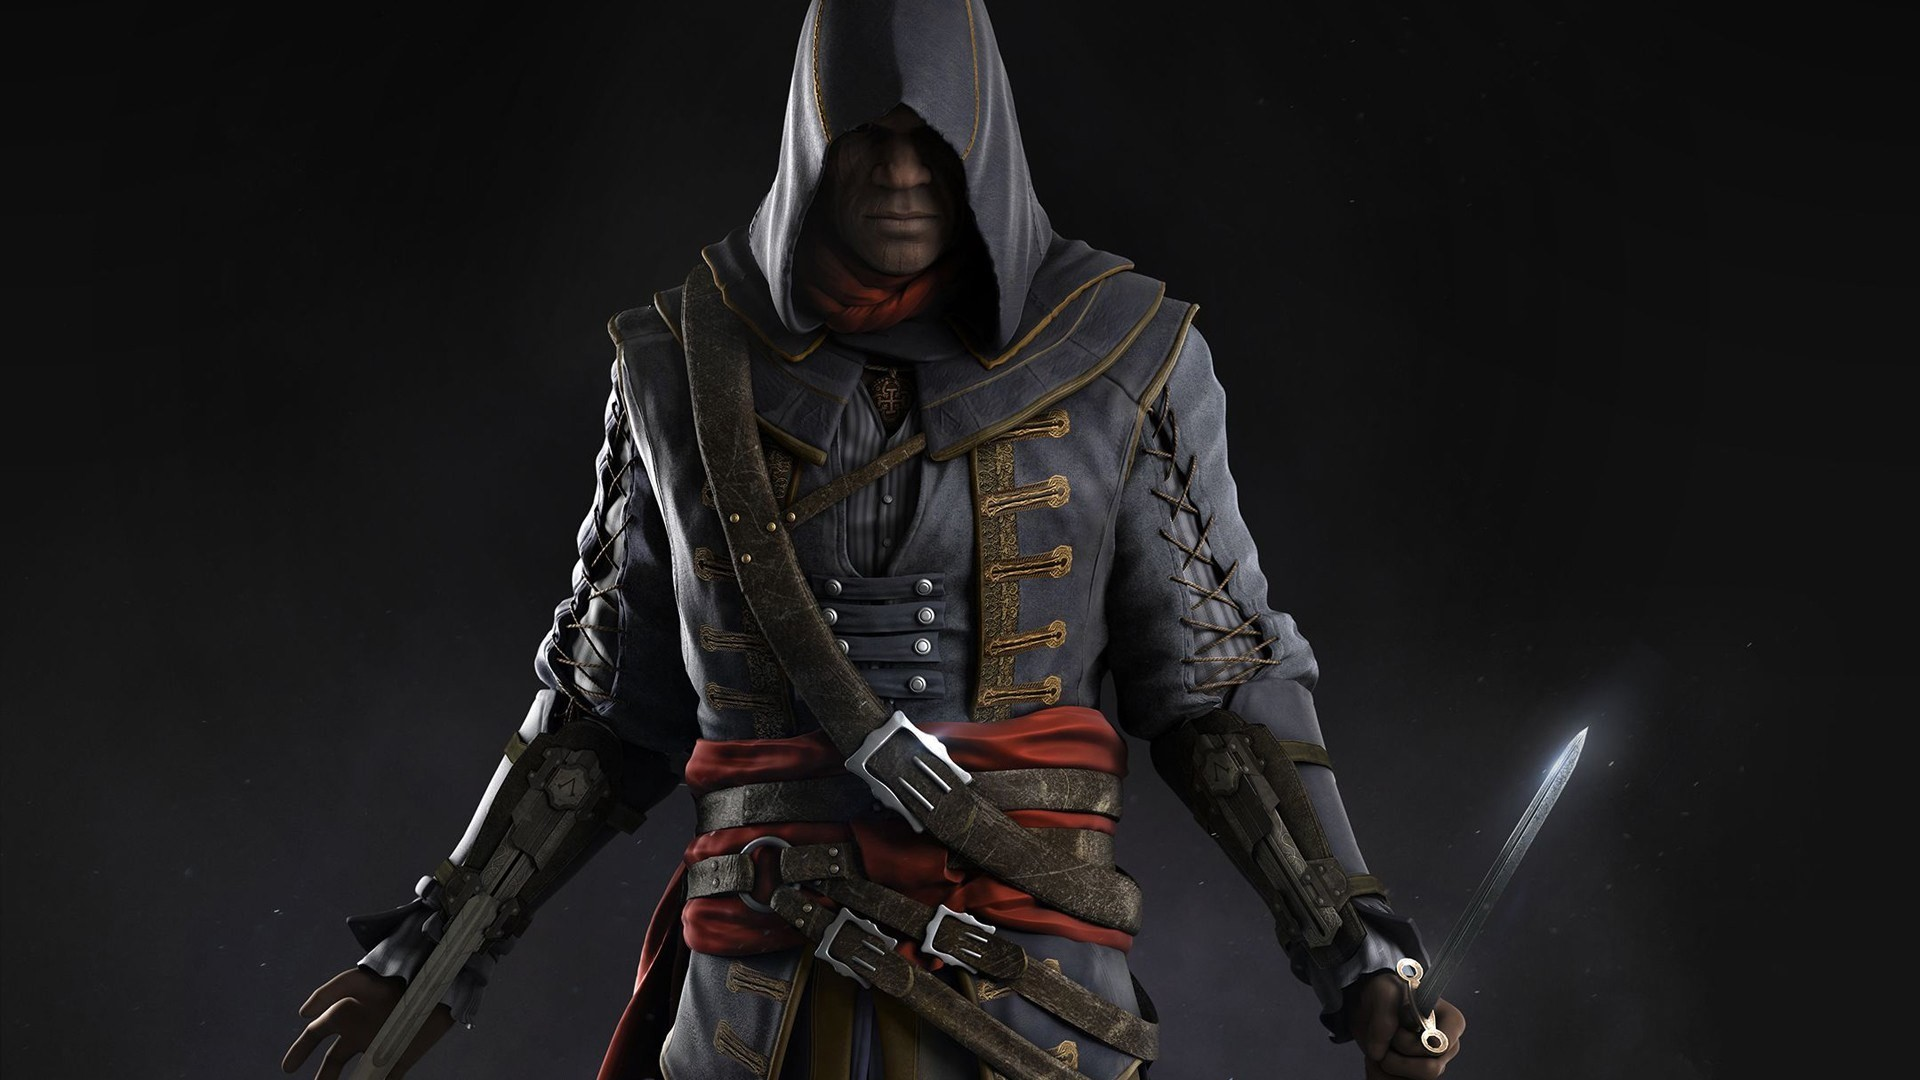 1920x1080 #1307385, Assassins Creed: Rogue category - Awesome Assassins Creed: Rogue  wallpaper